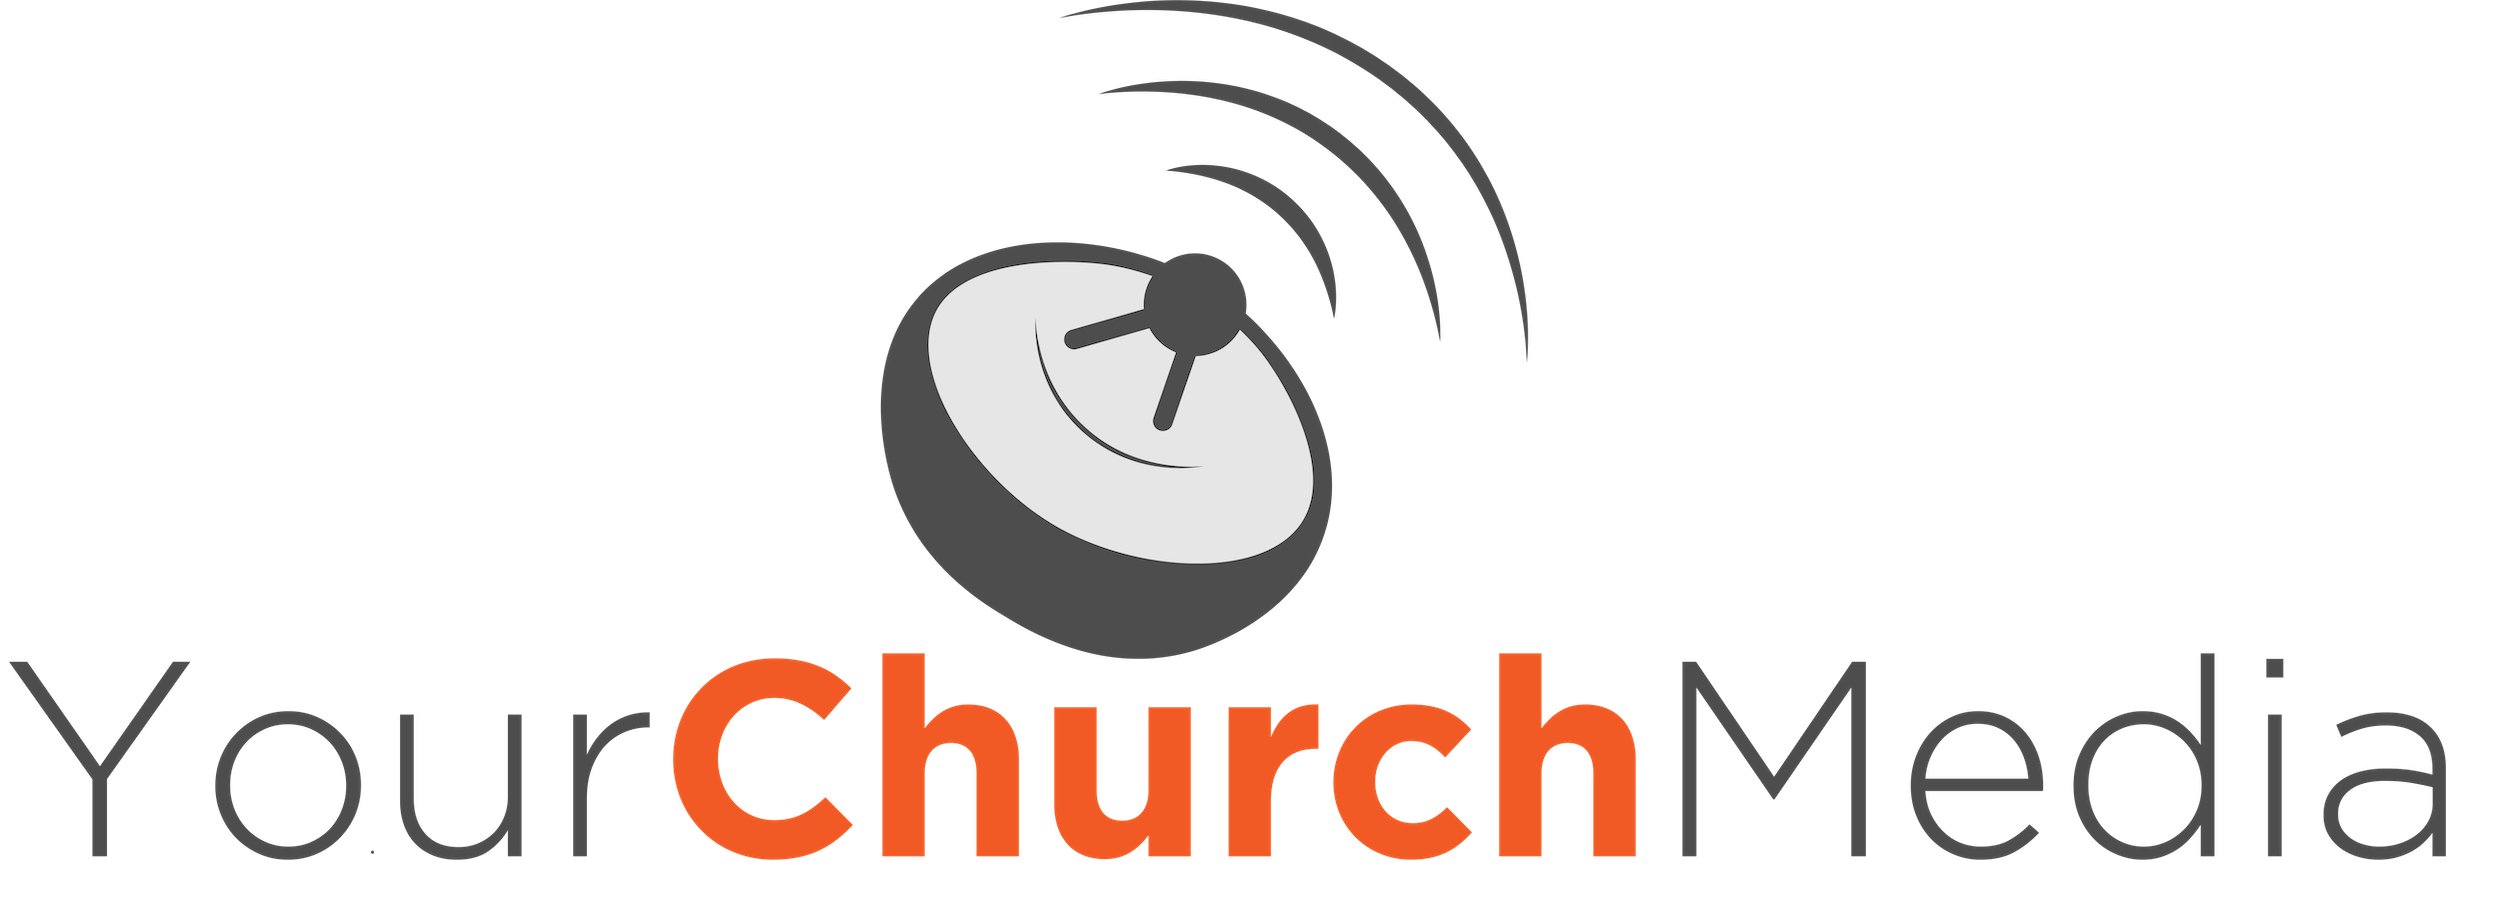 Your Church Media | Communication and Digital Media for Churches